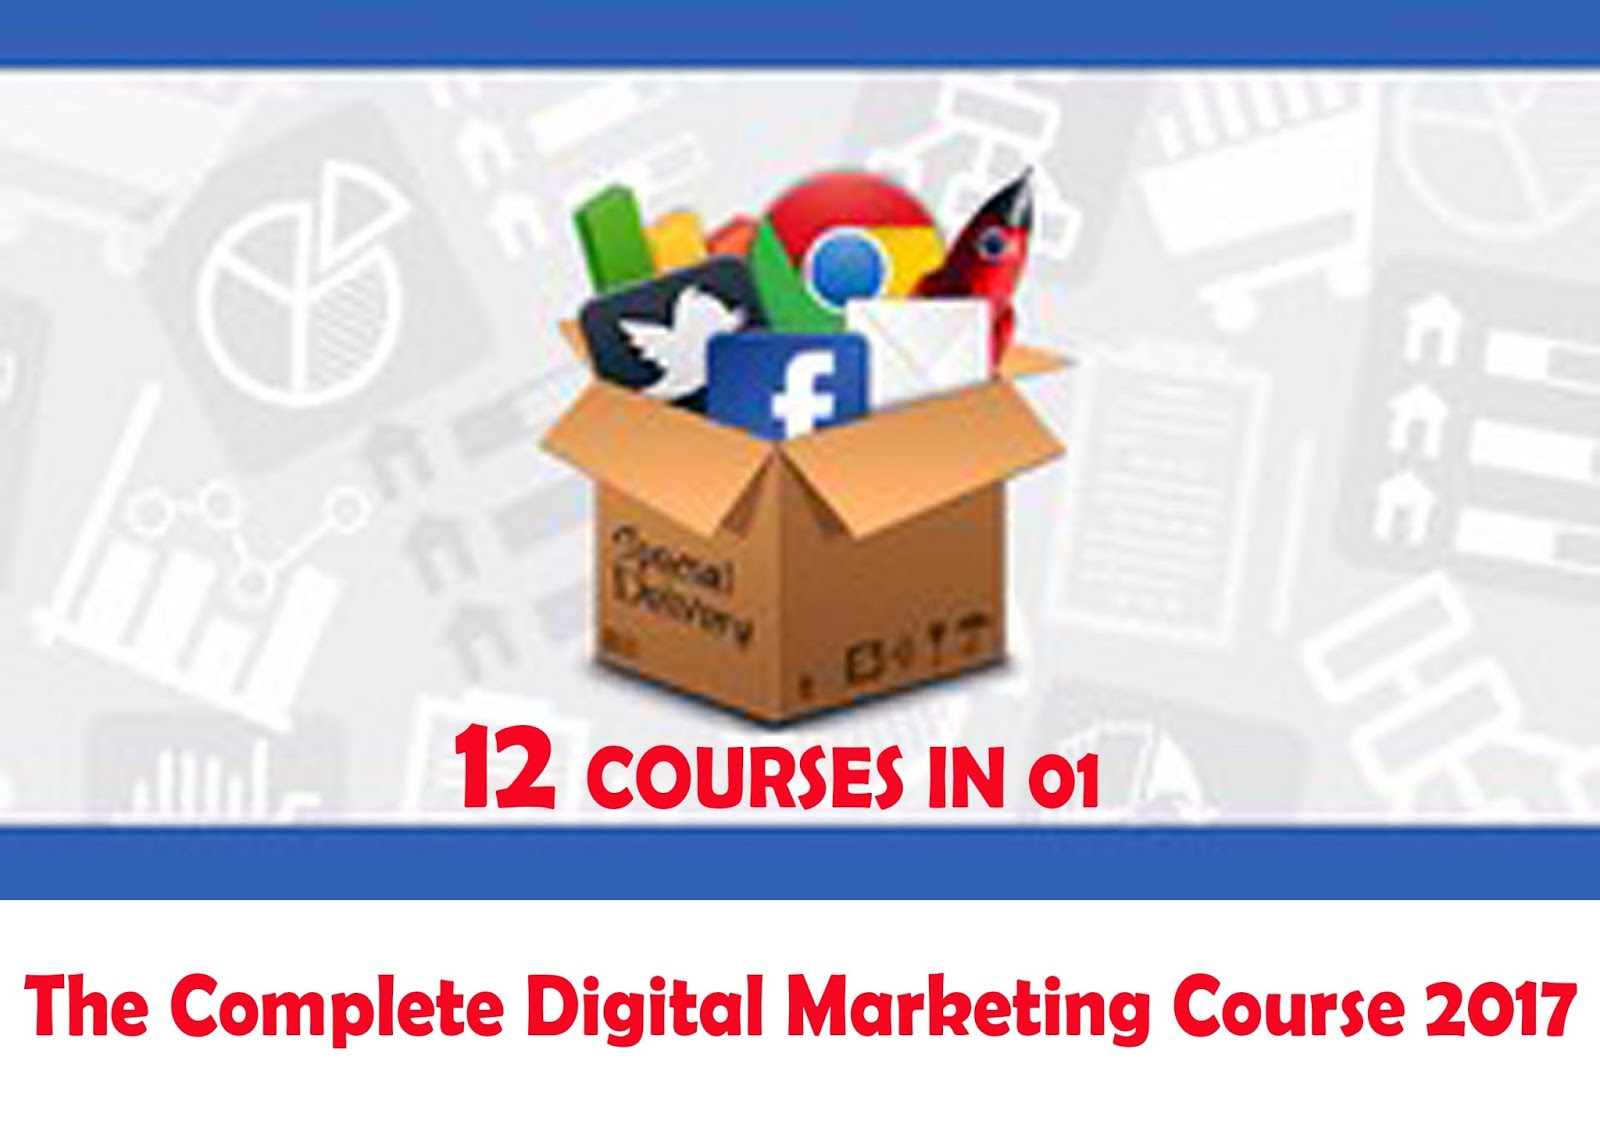 digital marketing course pdf free download